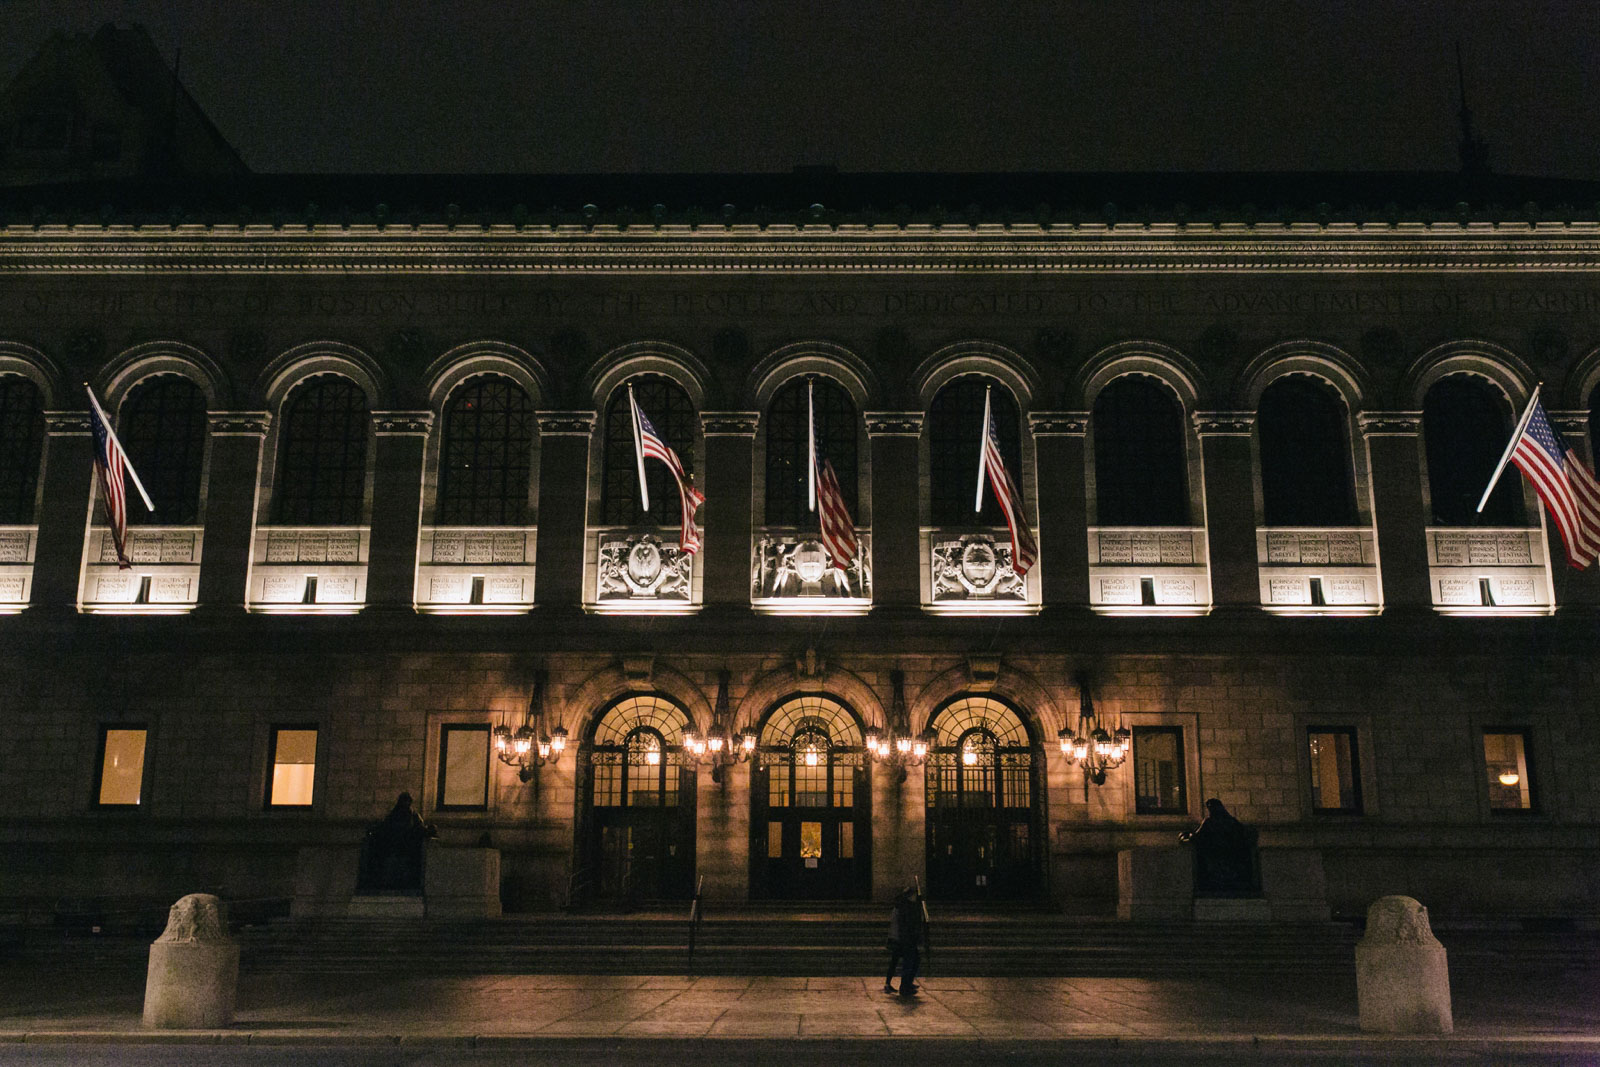 facade of Boston Public Library lit up at night in Boston's Back Bay neighborhood